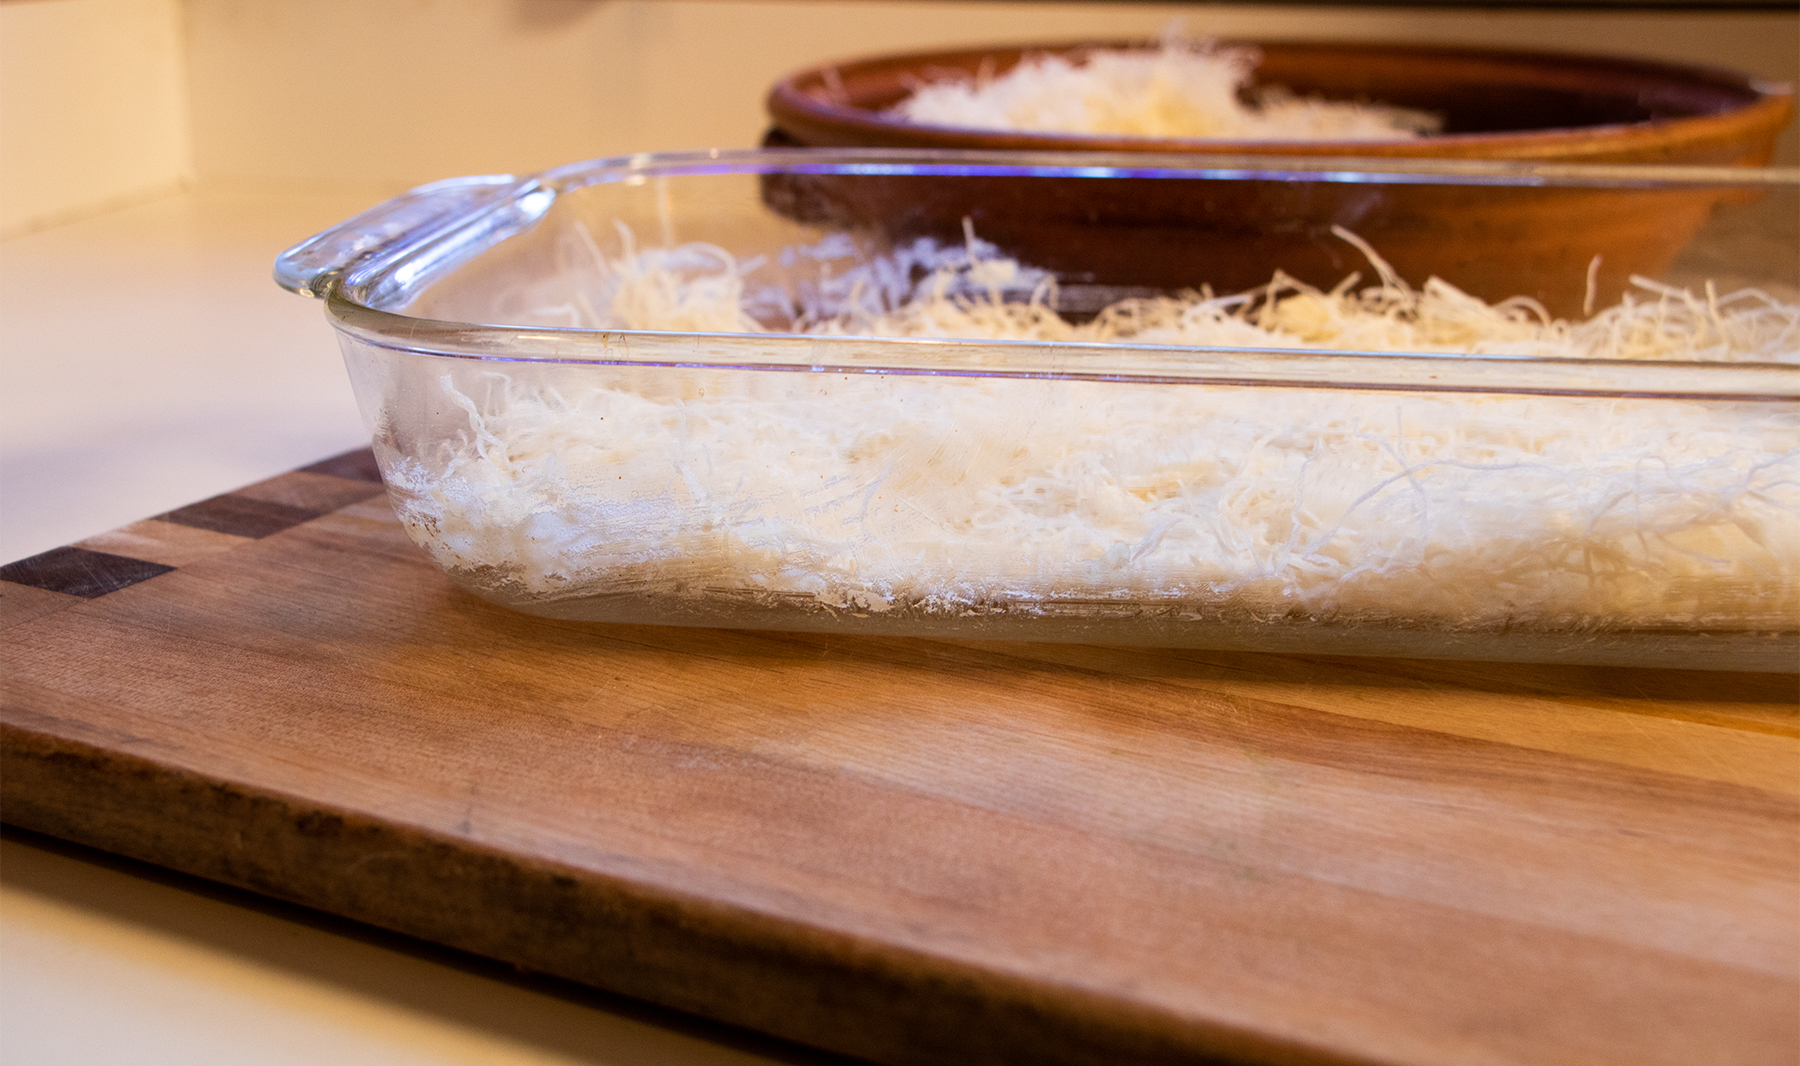 Pyrex baking tray with kataifi pressed into the bottom